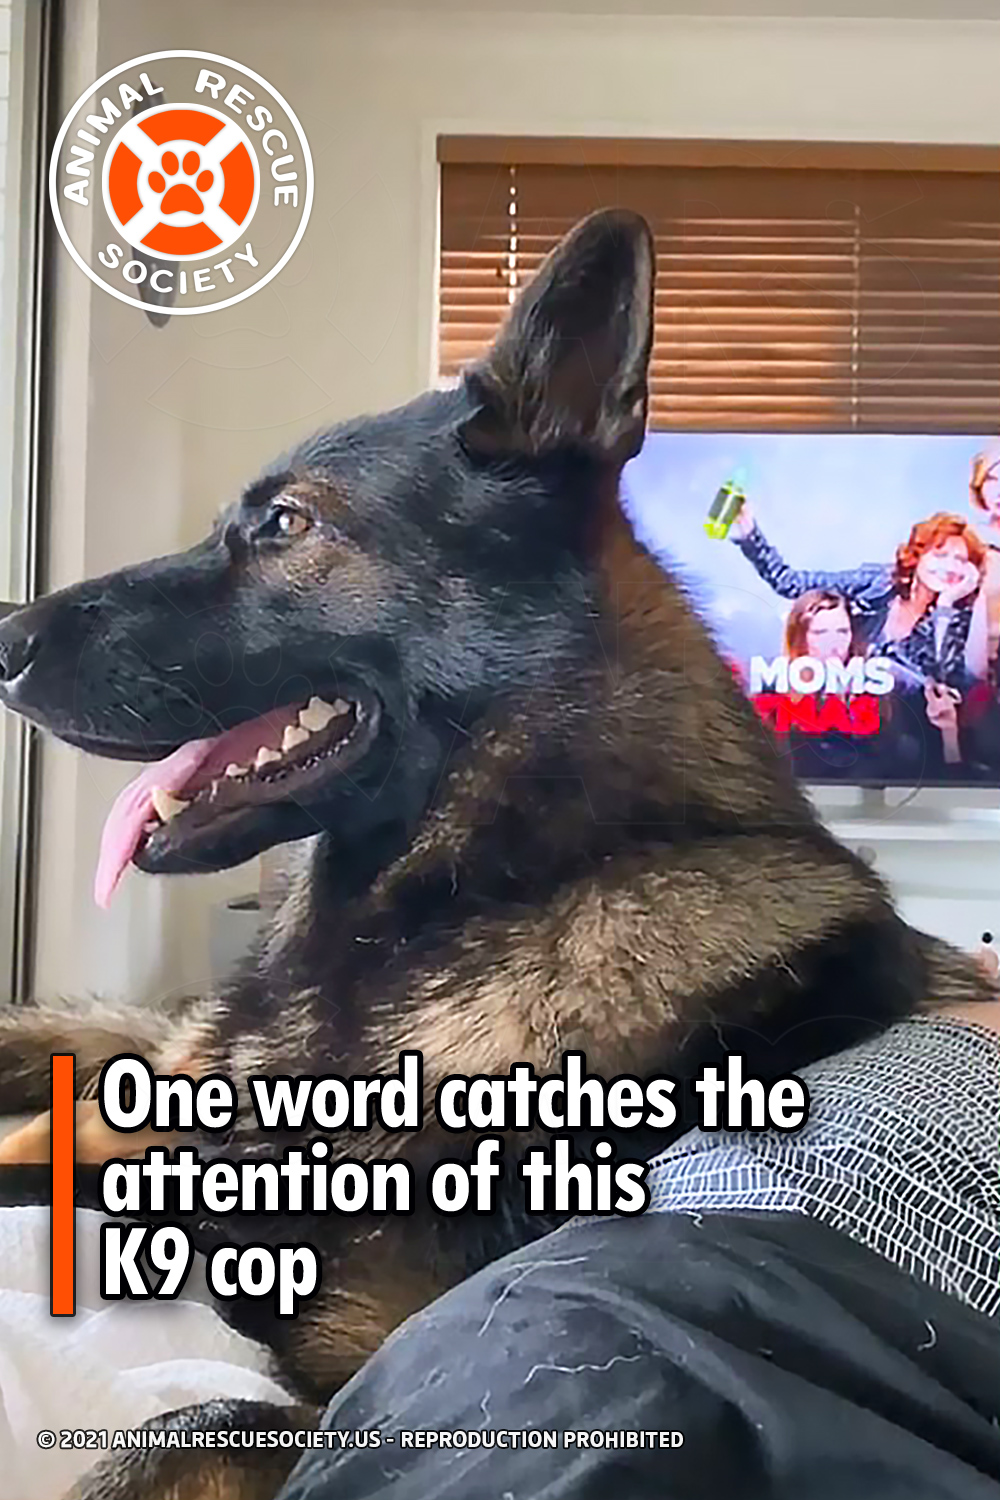 One word catches the attention of this K9 cop